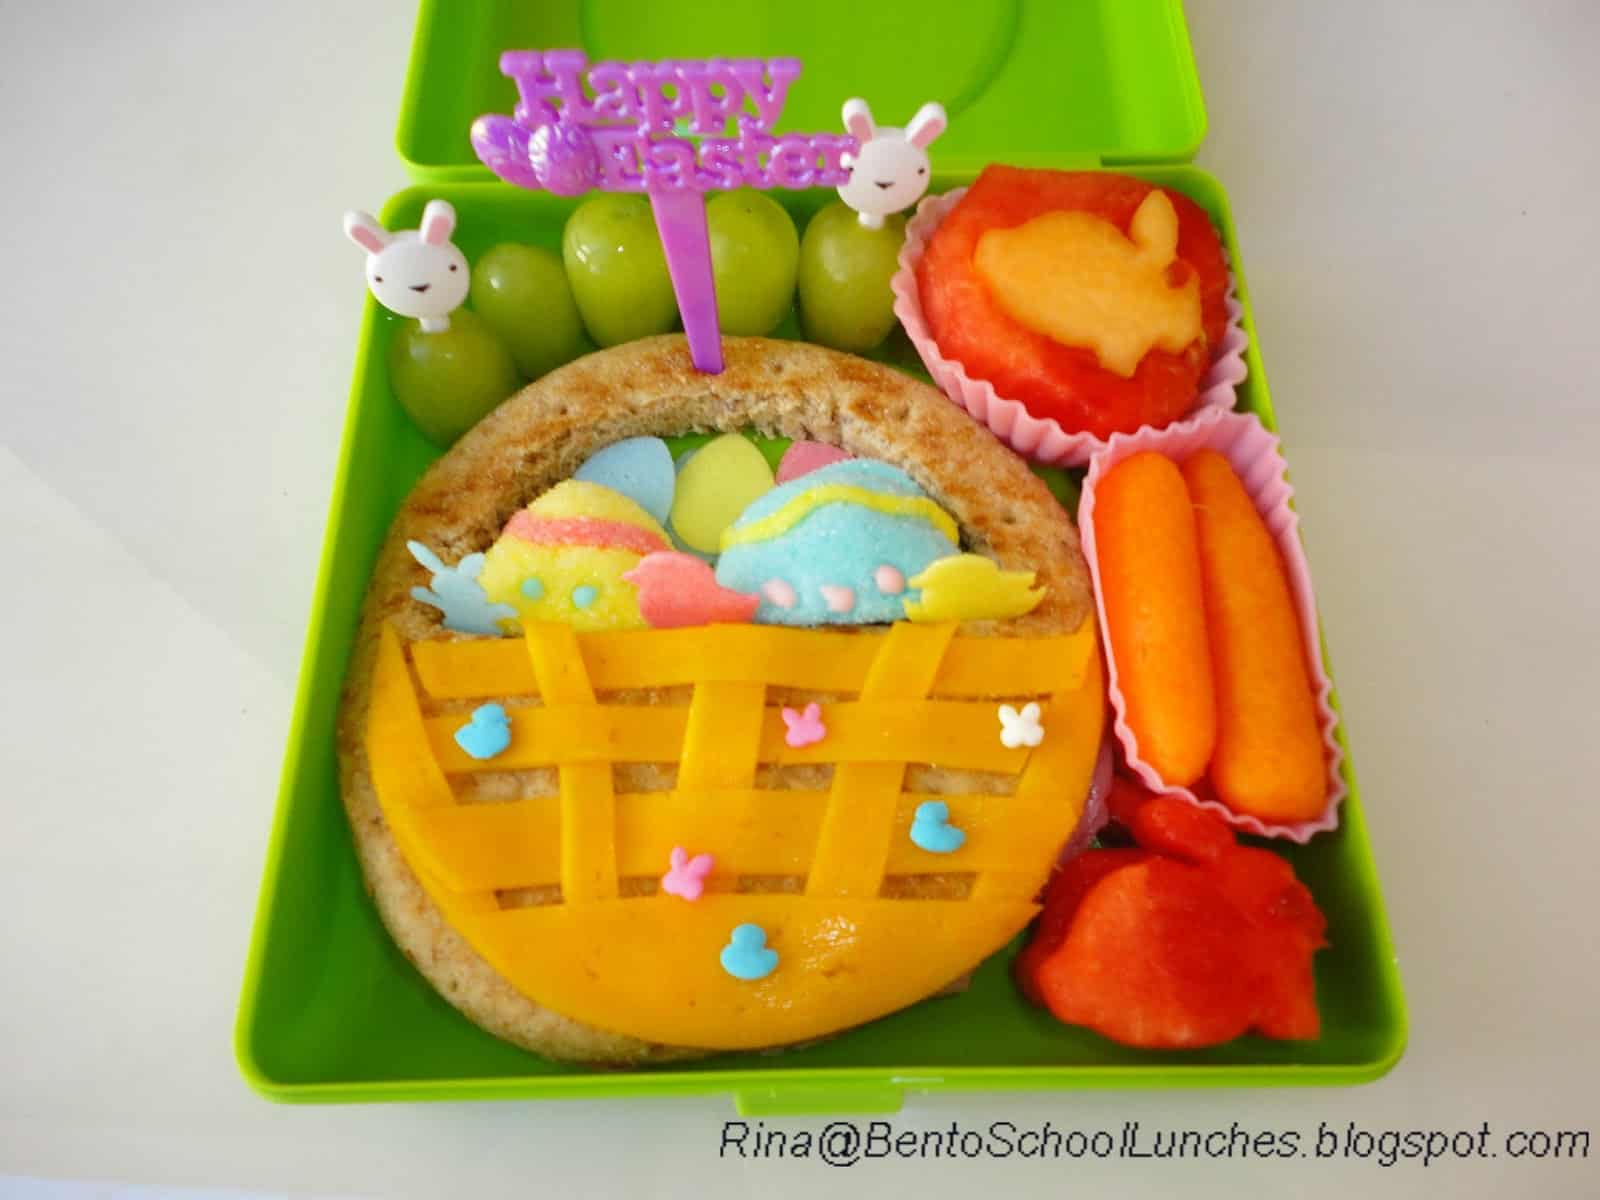 Edible Easter basket lunch